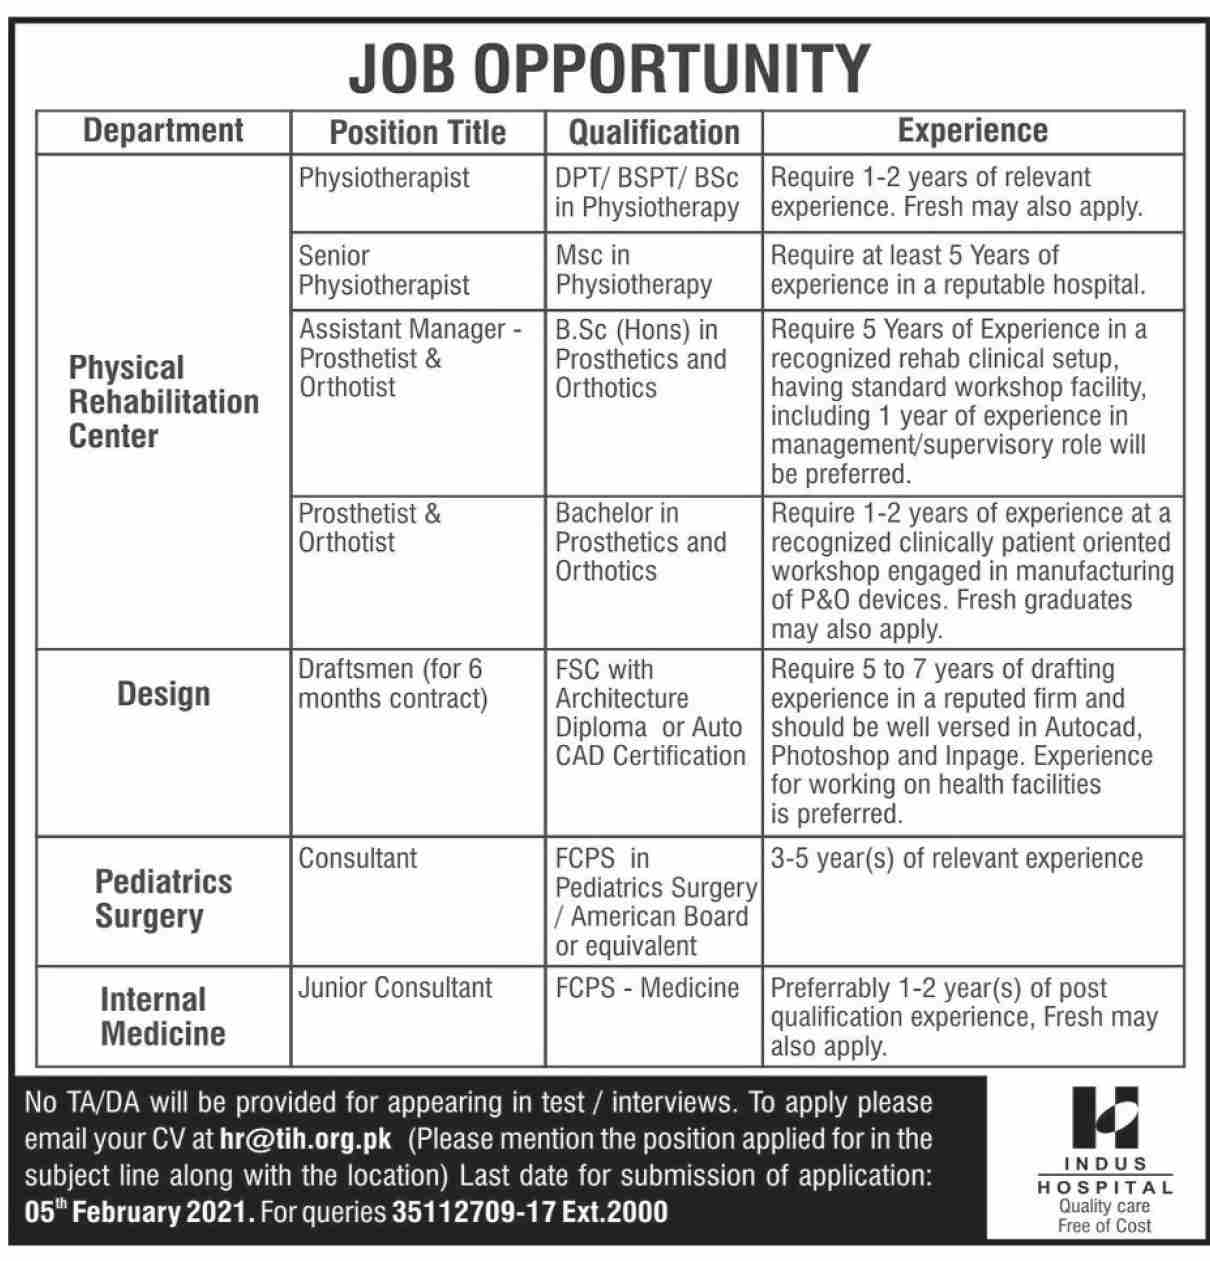 Indus Hospital Karachi - The Indus Hospital - Indus Hospital Jobs - Indus Hospital Current Vacancies - Indus Hospital Job Vacancy - The Indus Hospital Jobs - Indus Hospital Donation - Indus Hospital Zakat Account